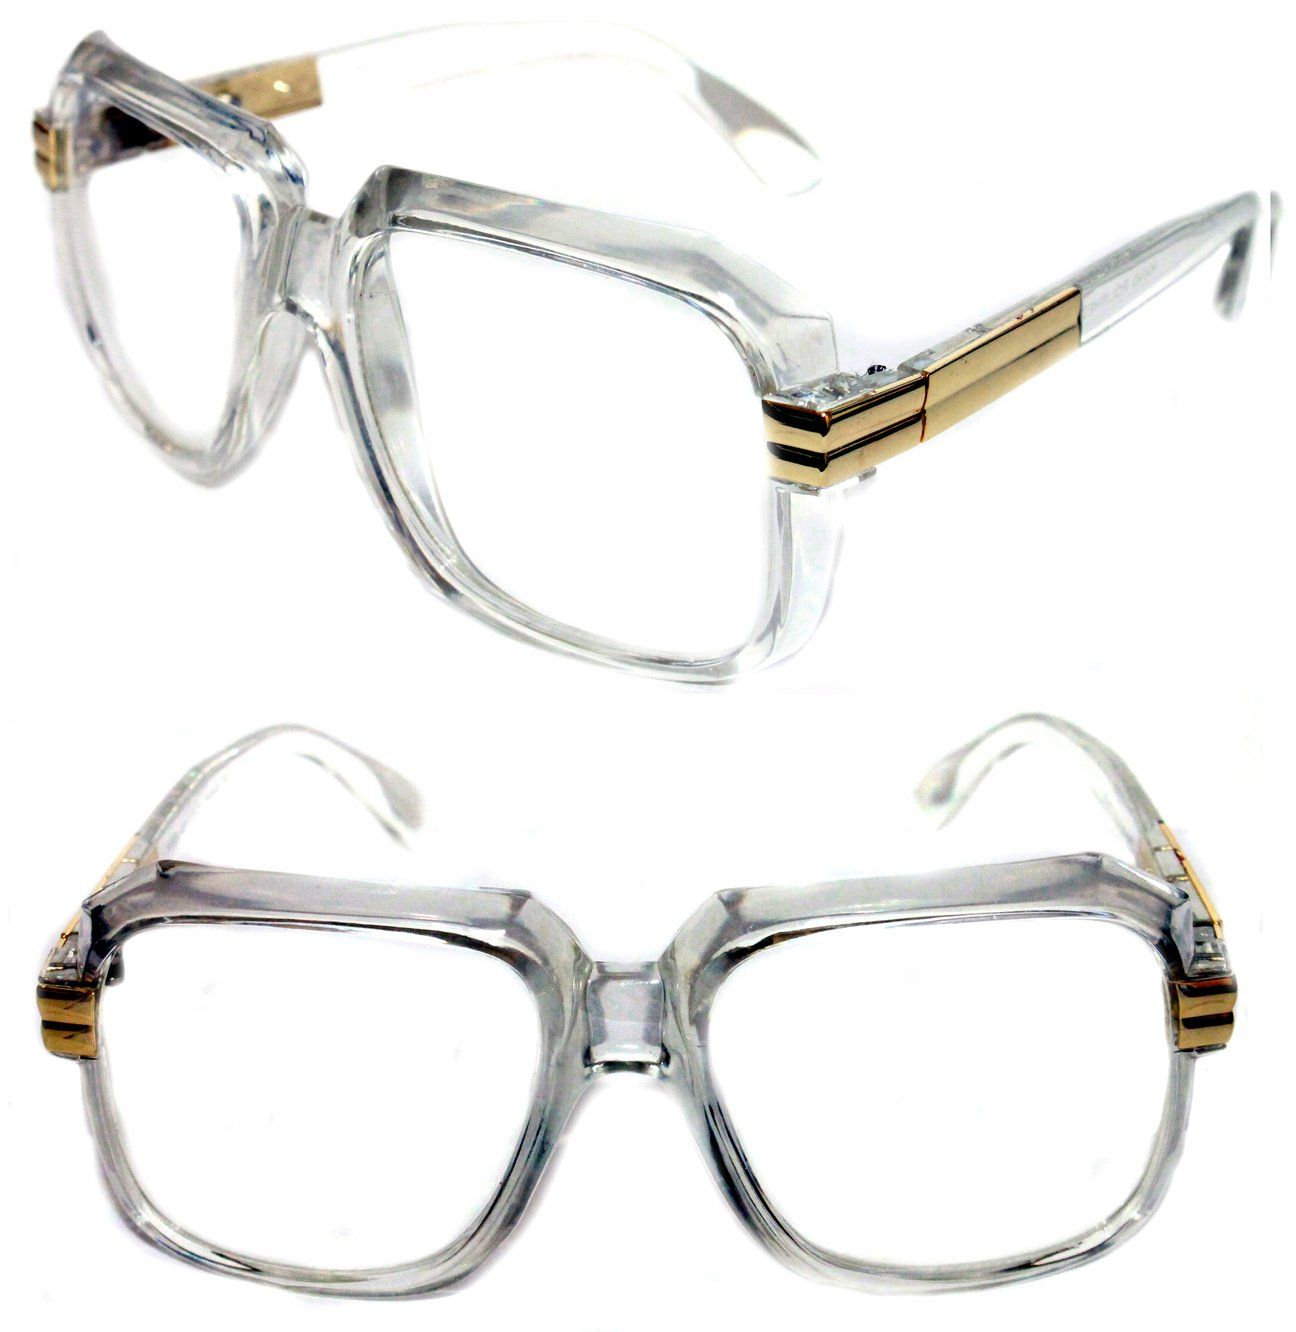 CLEAR FRAME AND CLEAR LENS OG OLD SCHOOL RAPPER COOL GLASSES Hipster Retro 80s